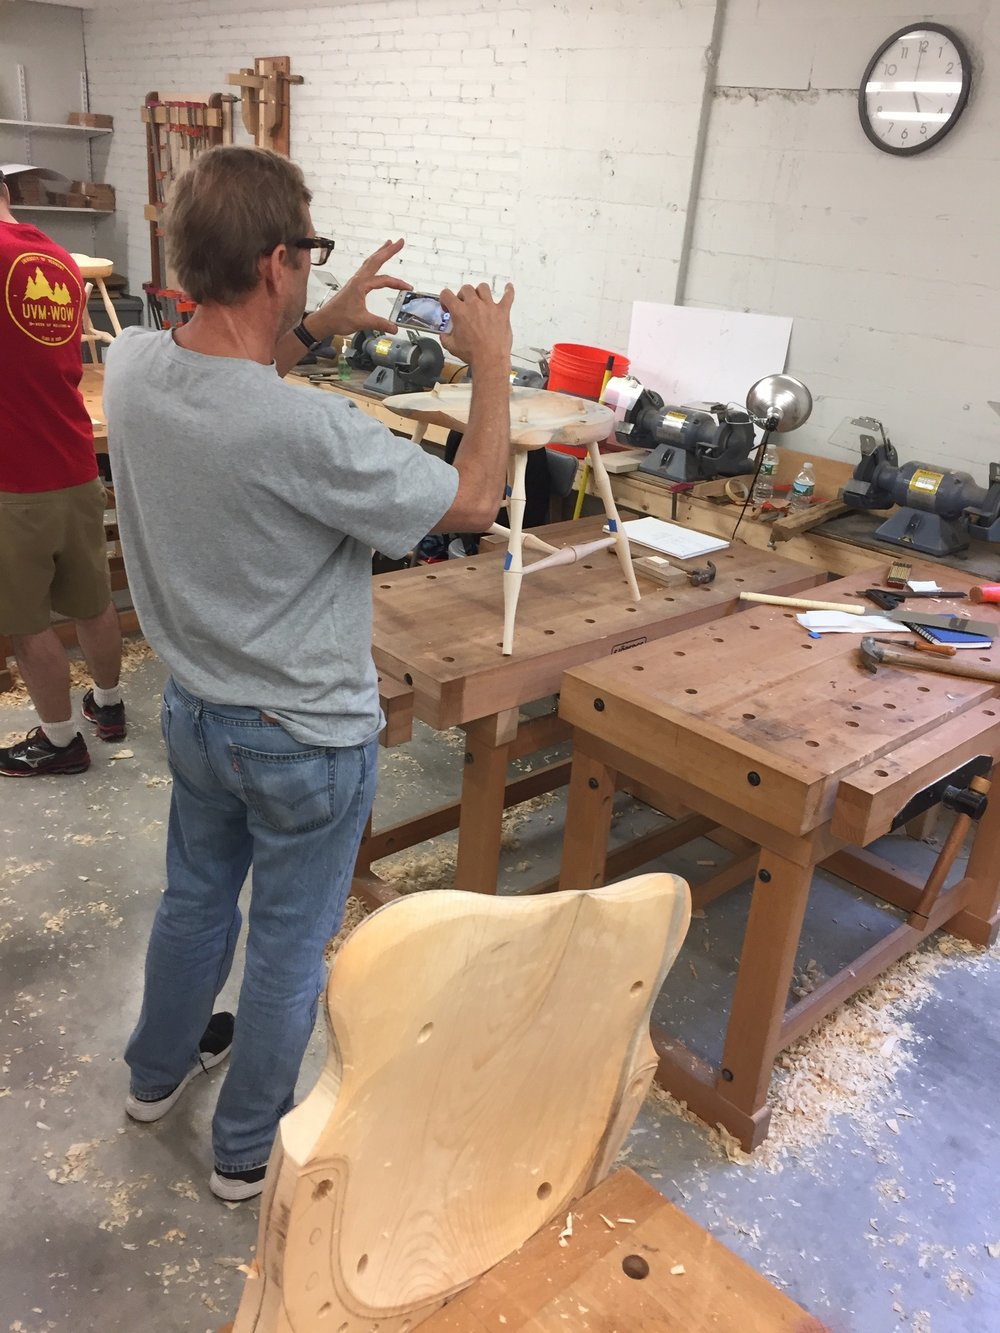 - After making chairs for so many years, one can easily forget the magic of seeing it come together for the first time. I love seeing the chairs through the eyes of the students as they start to come together.Here is Tomas at my most recent class at North Bennet Street. He came all the way from Munich to make a c-arm!